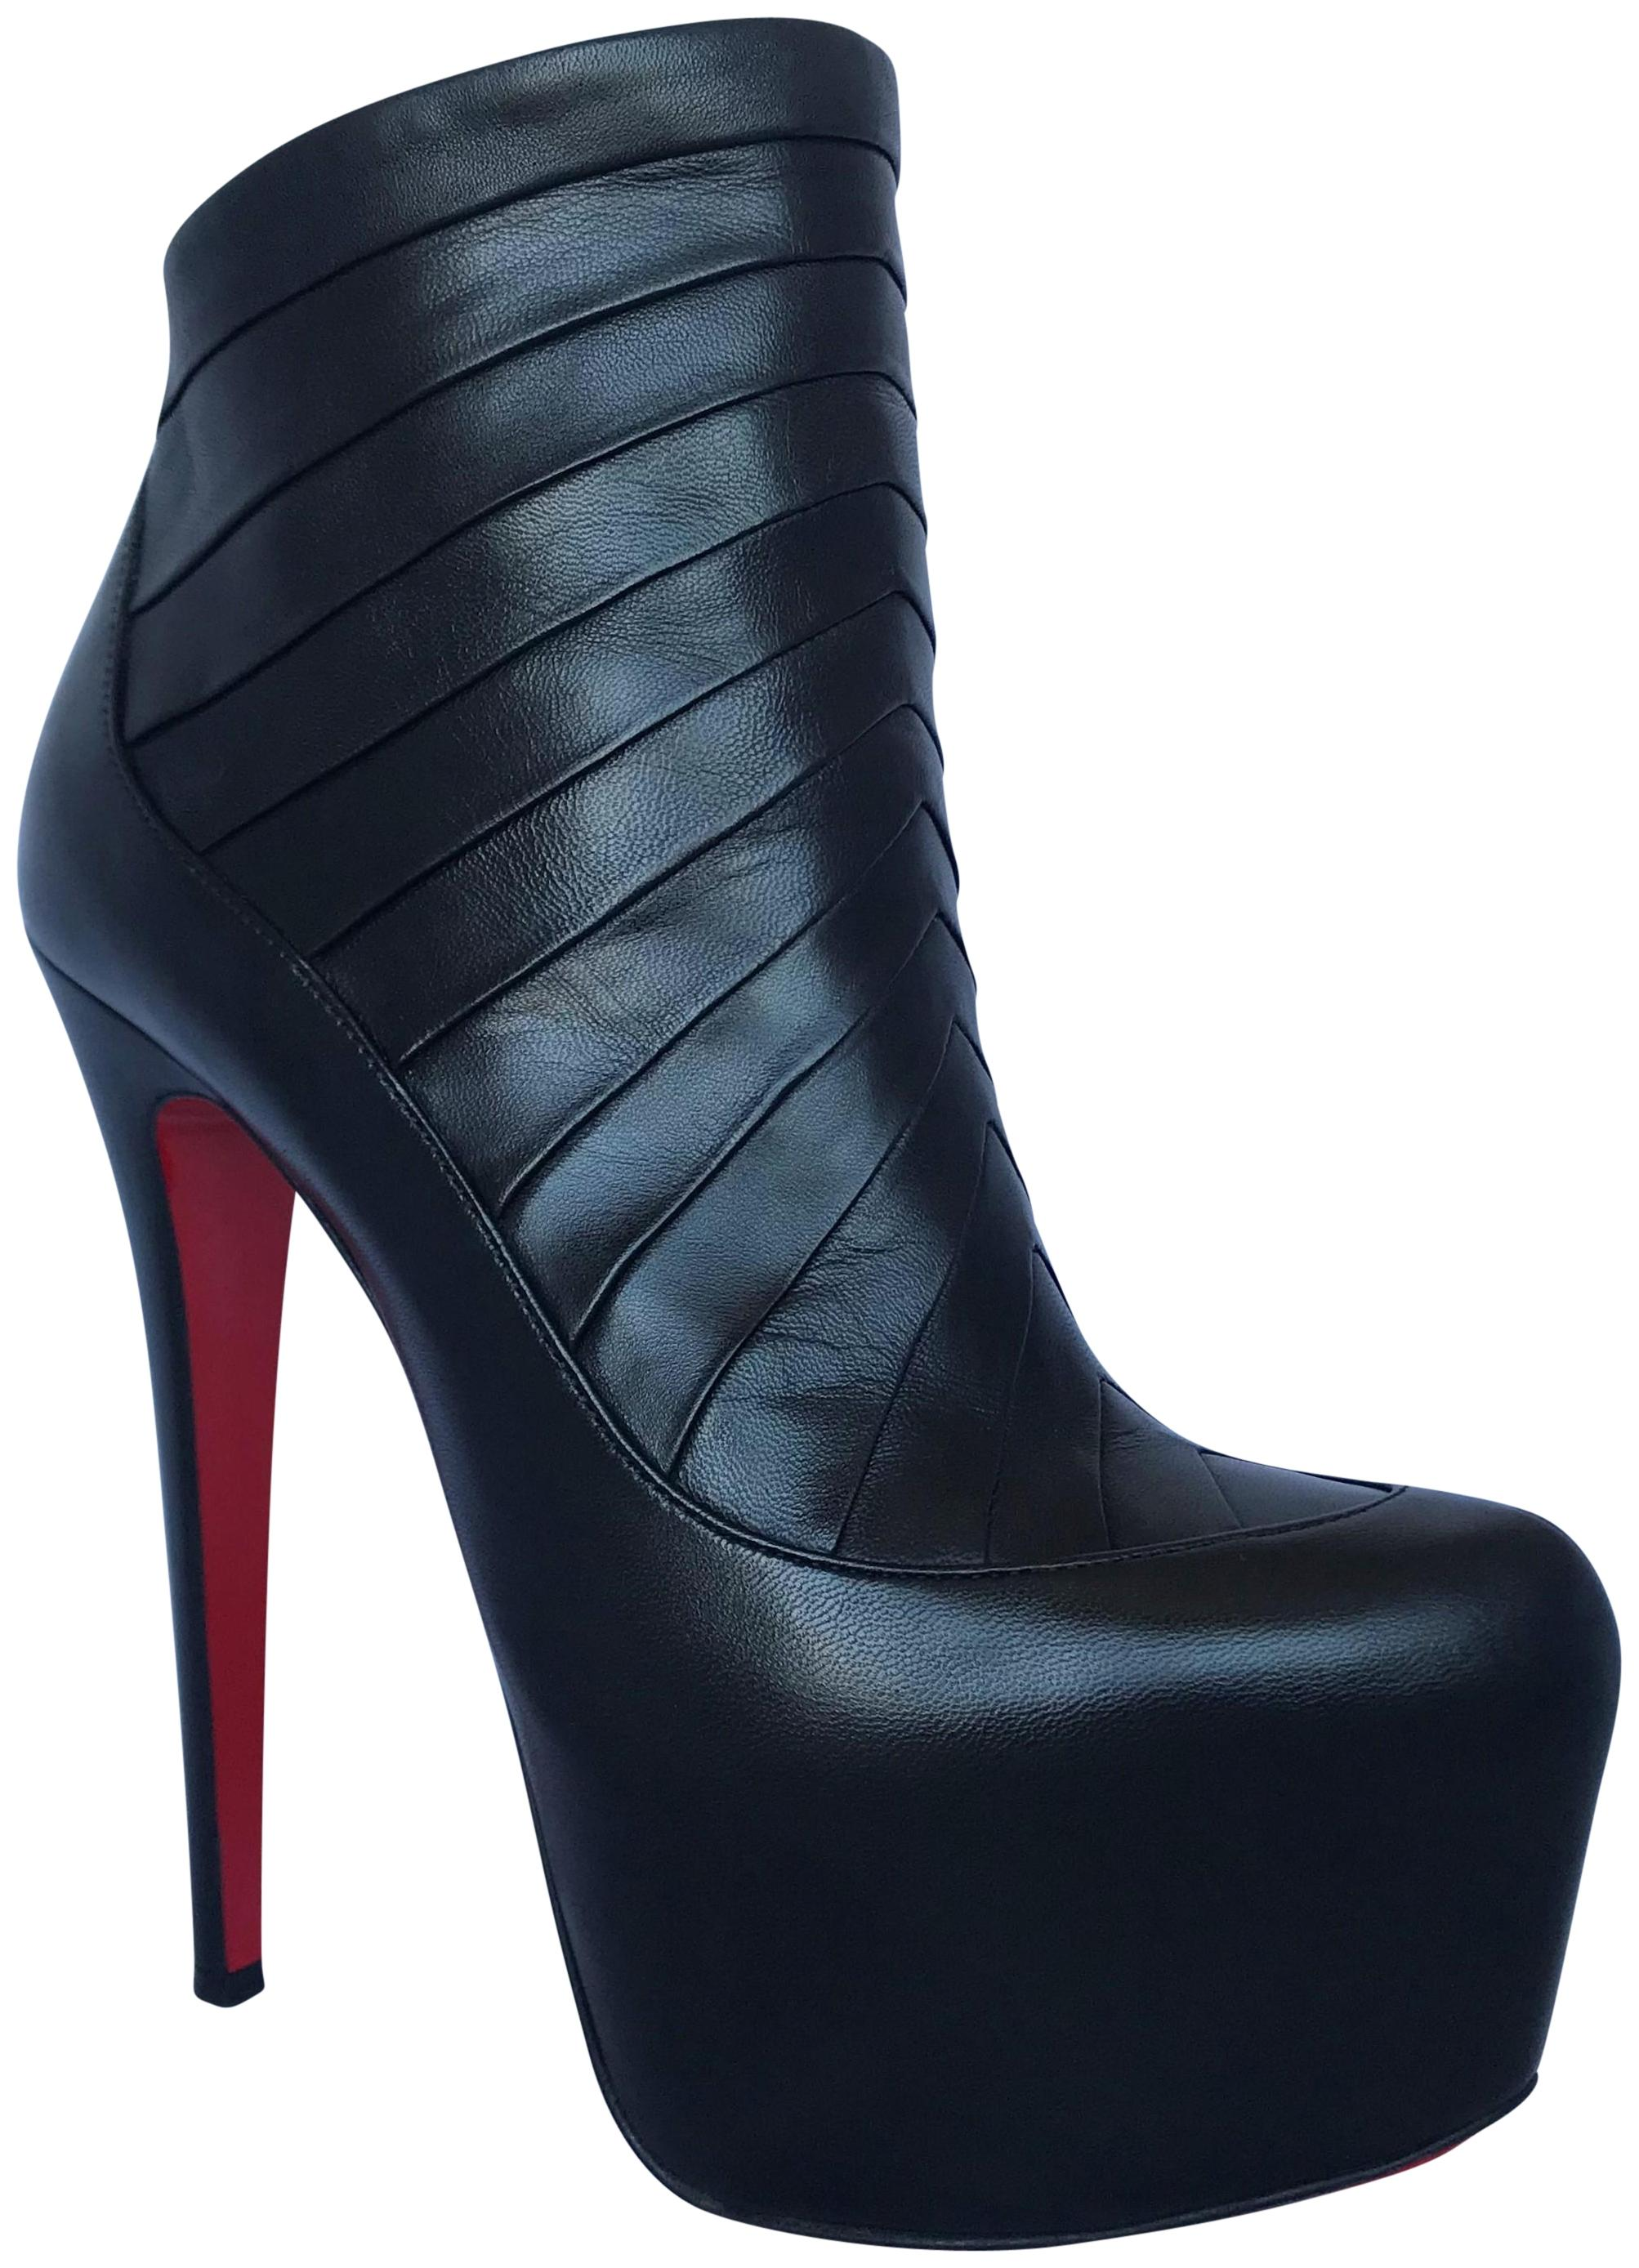 Christian Louboutin Black Amor 37it Platform High Heel Lady Toe Daf Red Sole Leather Ankle Boots/Booties Size EU 37 (Approx. US 7) Regular (M, B)